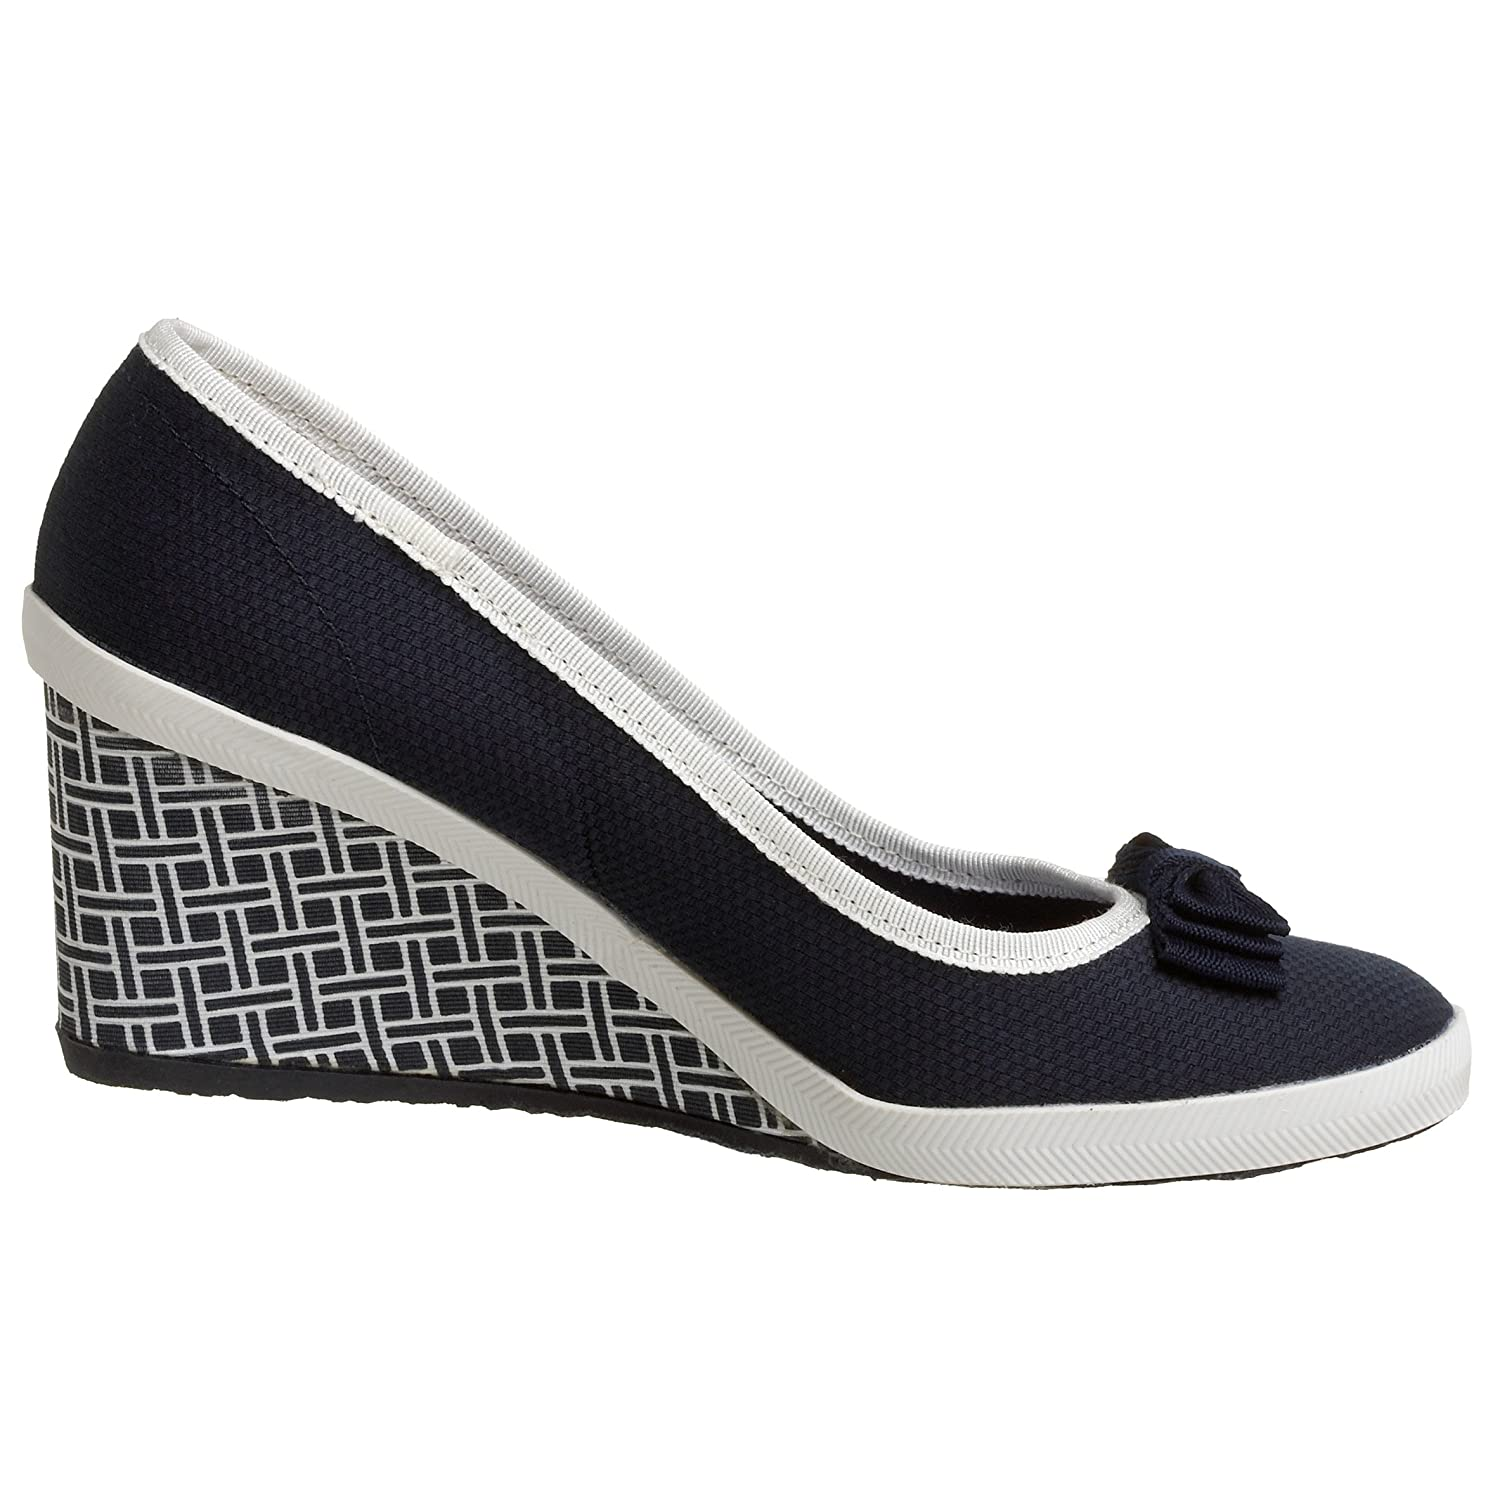 Keds Bliss Skimmer Wedge - Free Overnight Shipping & Return Shipping: Endless.com